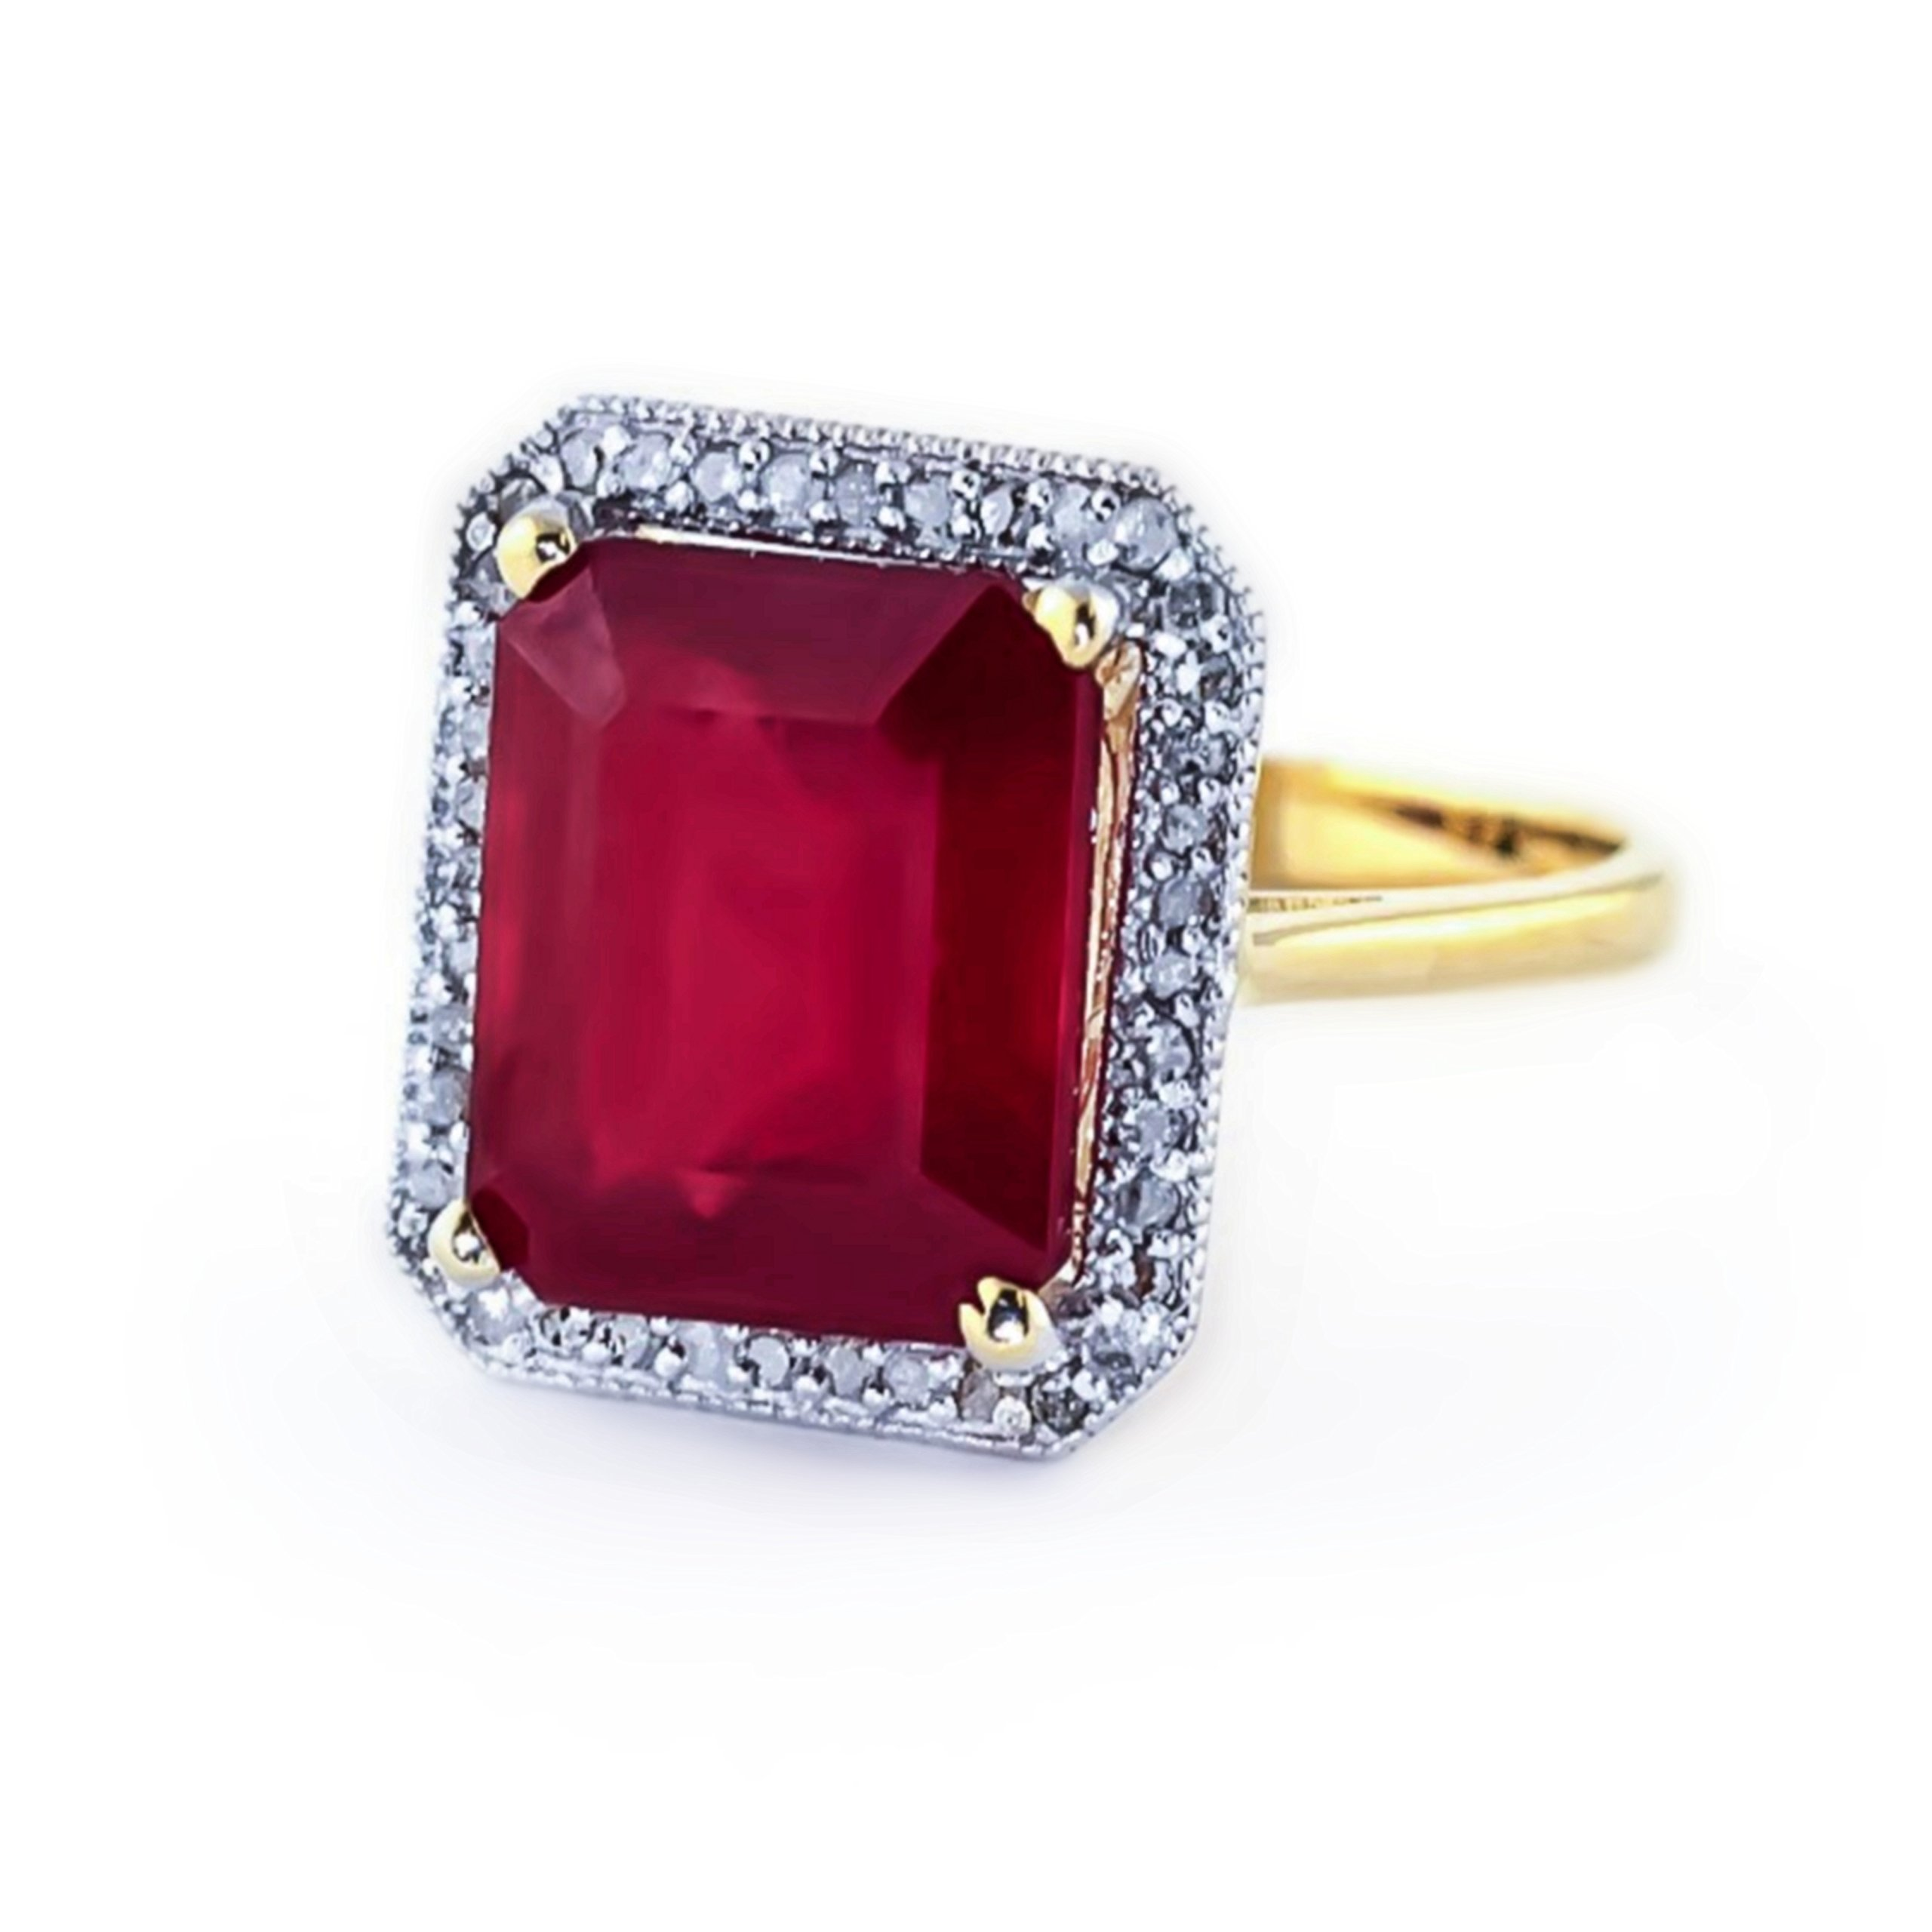 7.45 Carat 14K Solid White Rose Yellow Gold Emerald Cut Ruby Halo Design with Natural Diamond Ring 4894 (Yellow-Gold, 7.5) by Galaxy Gold